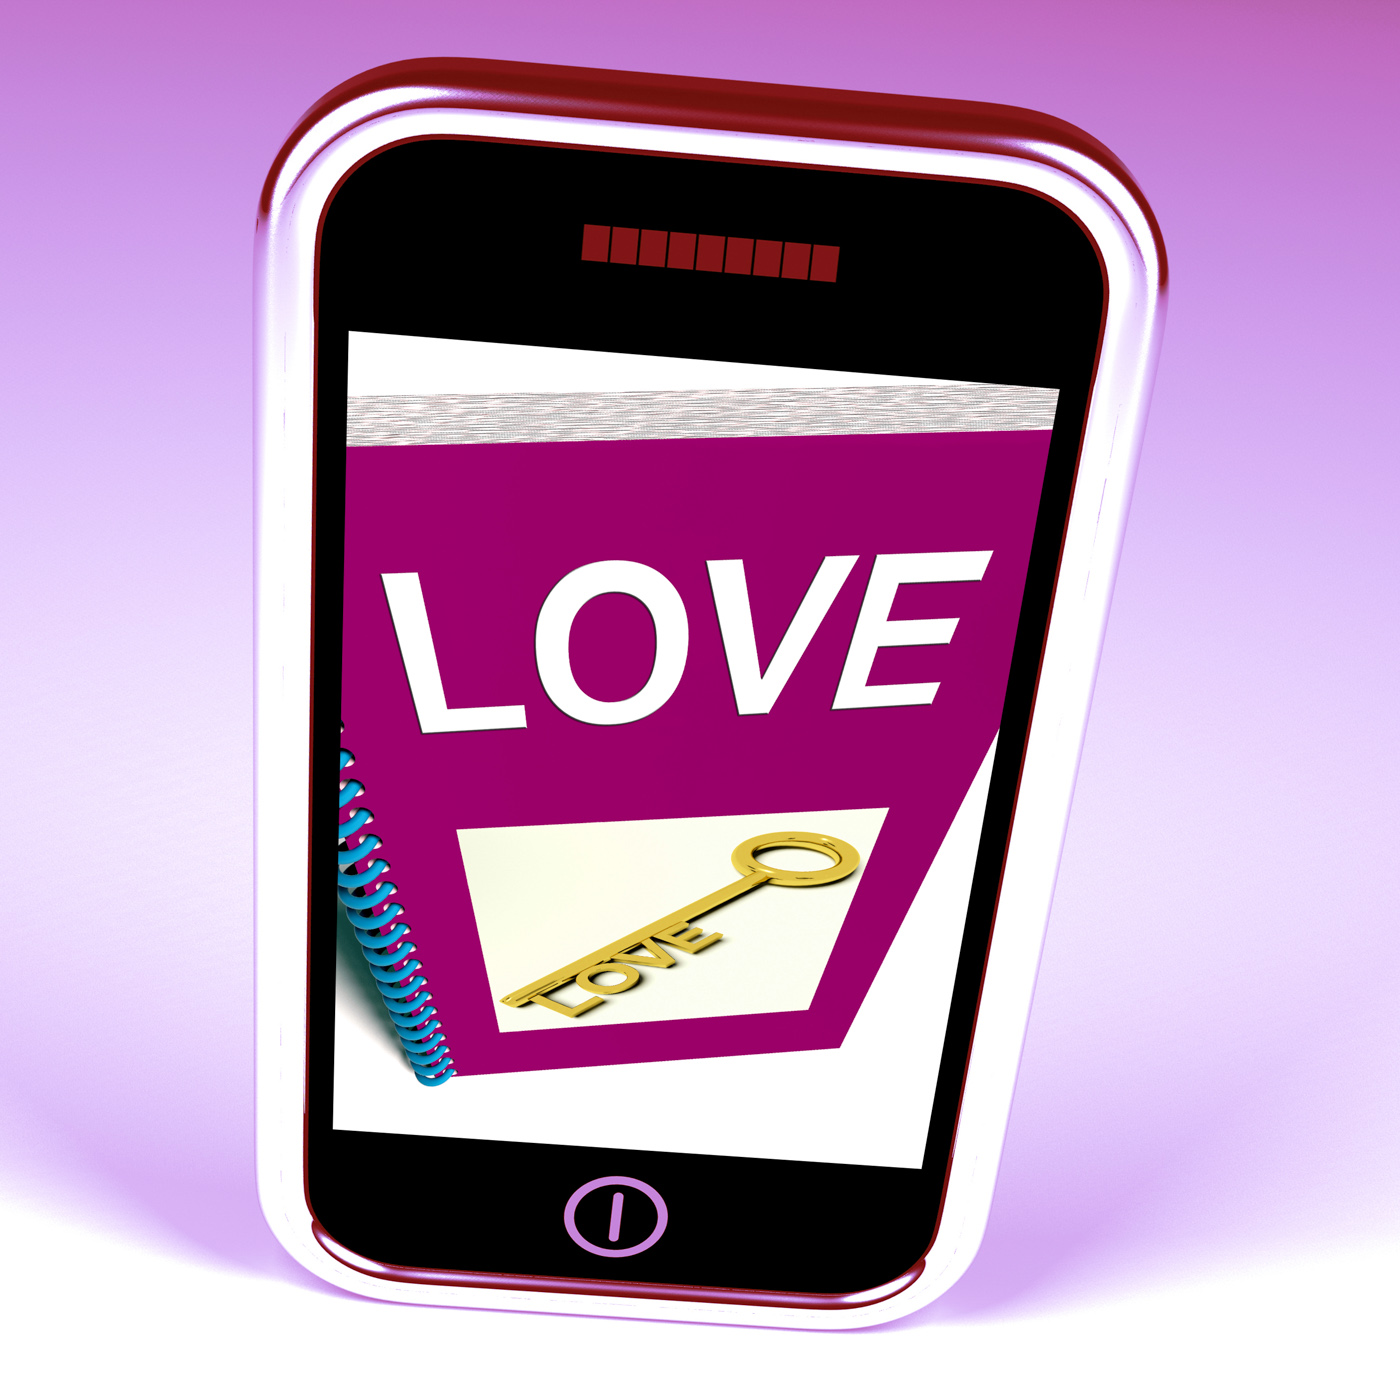 Love phone shows key to affectionate feelings photo